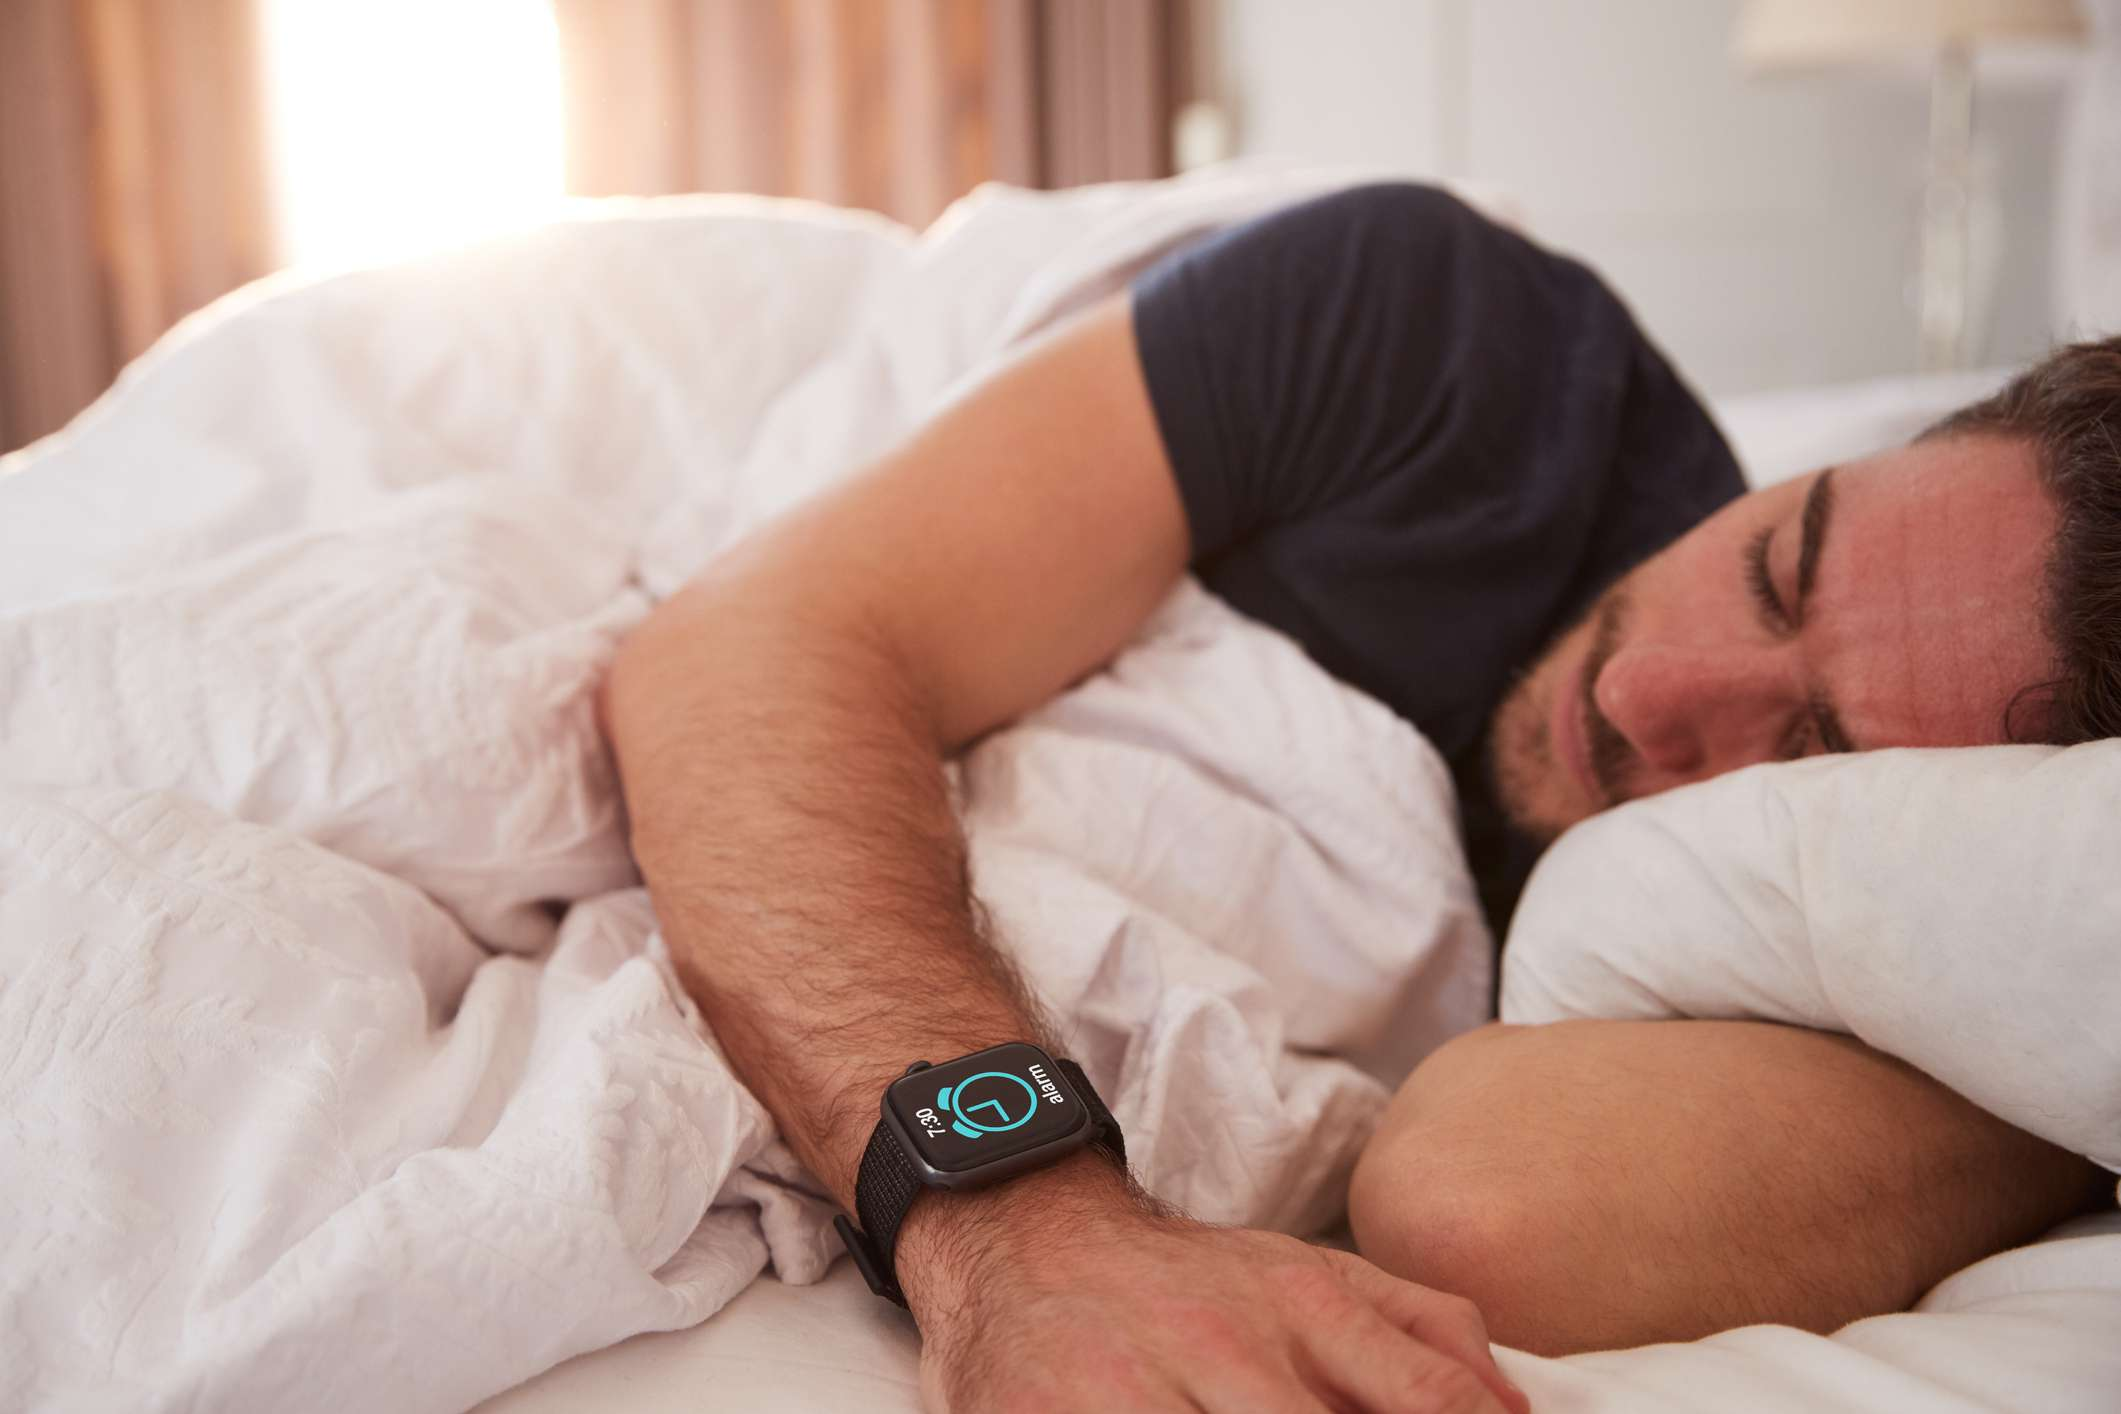 Sleeping with smartwatch